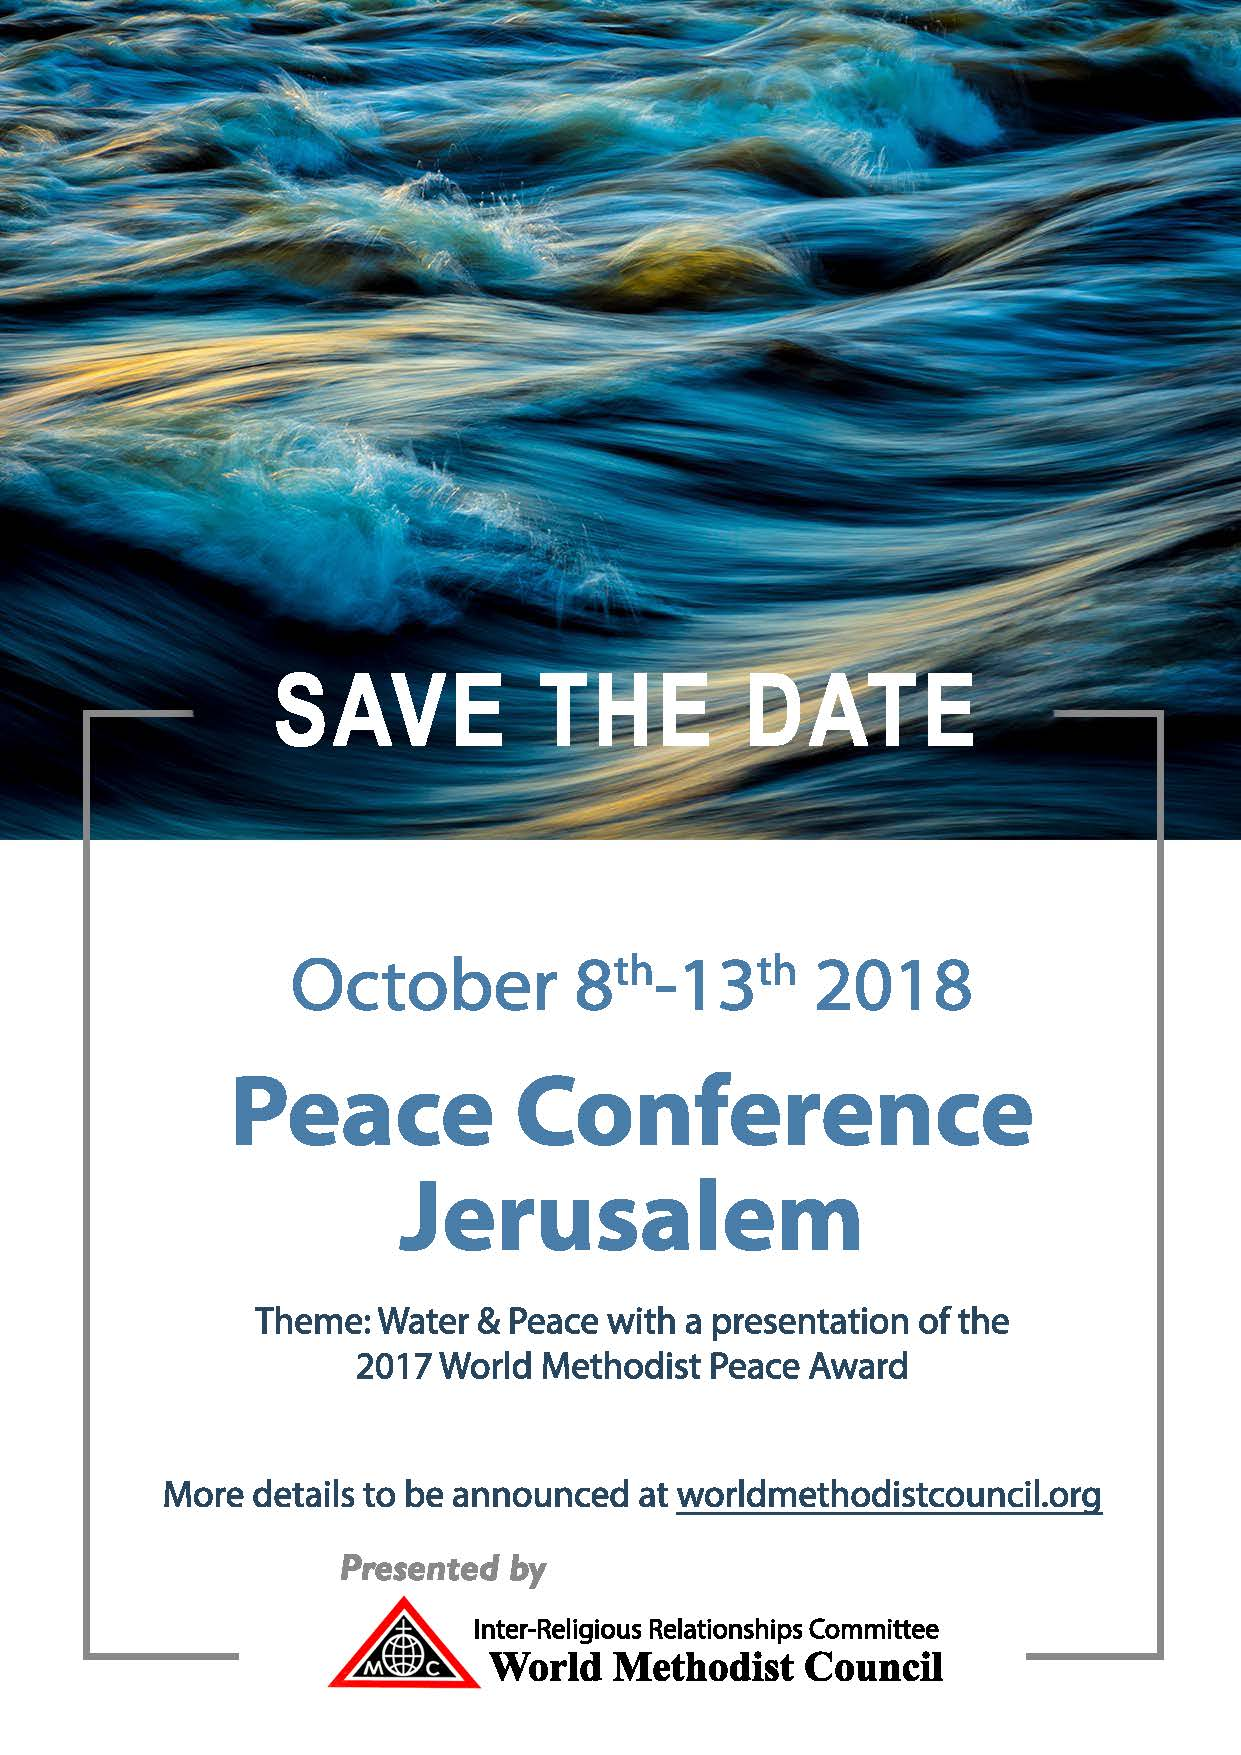 wmc peace conference jerusalem save the date first friday letter